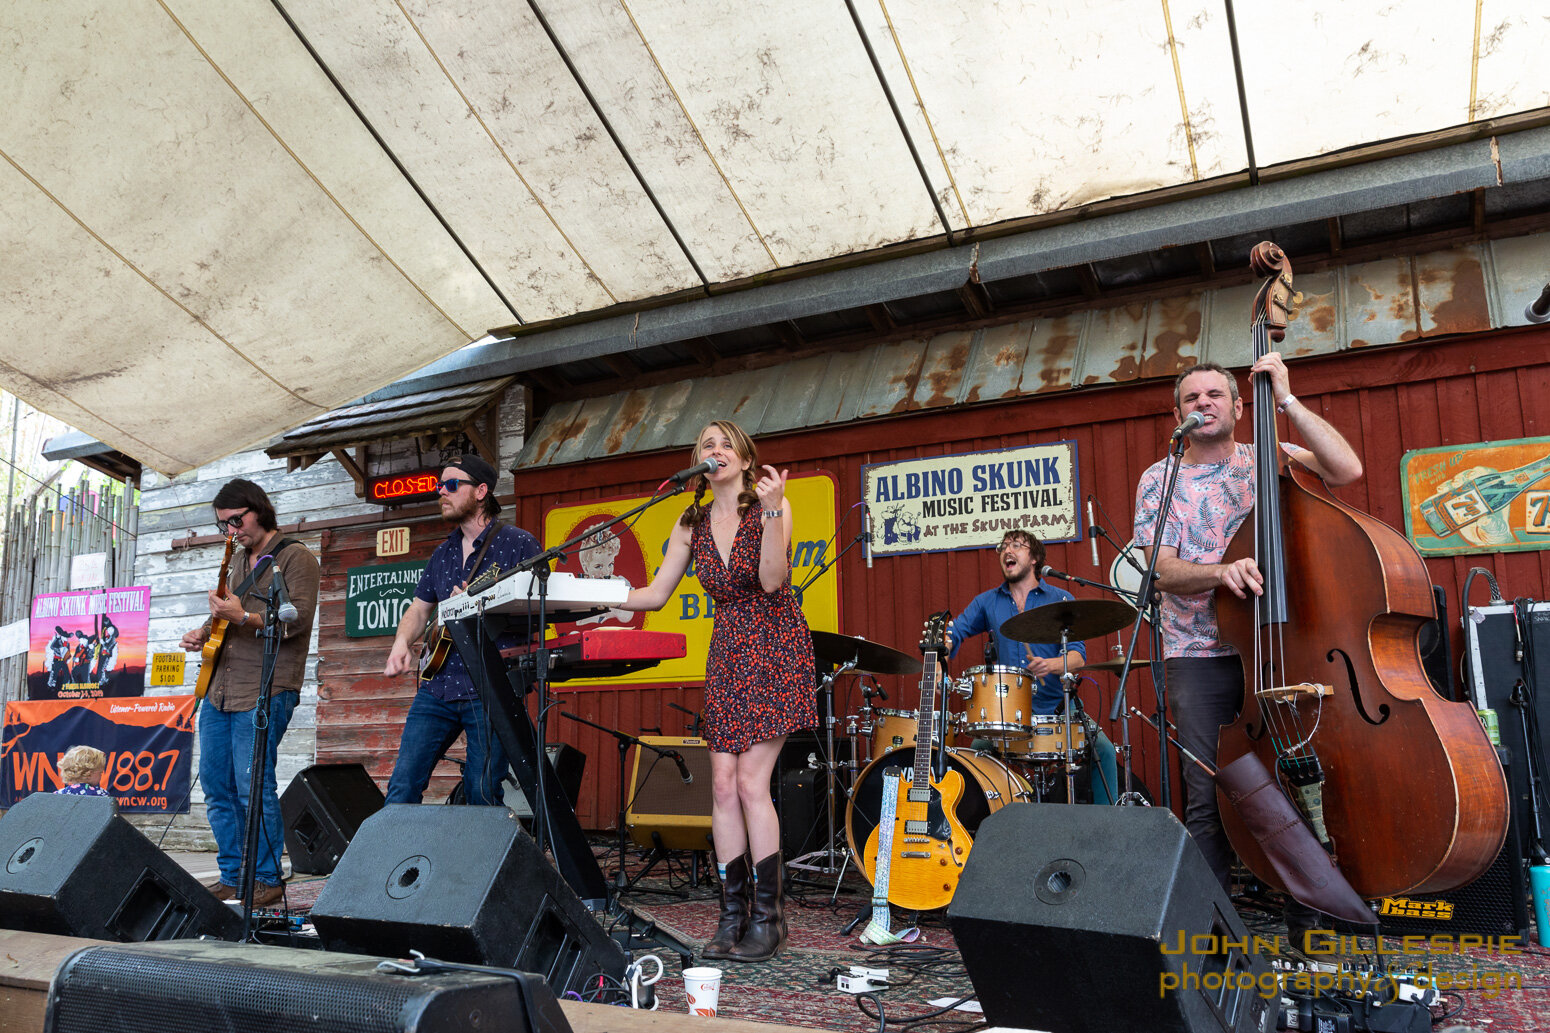 The Deer on stage at the Albino Skunk Music Festival 4-13-19. Photo: John Gillespie